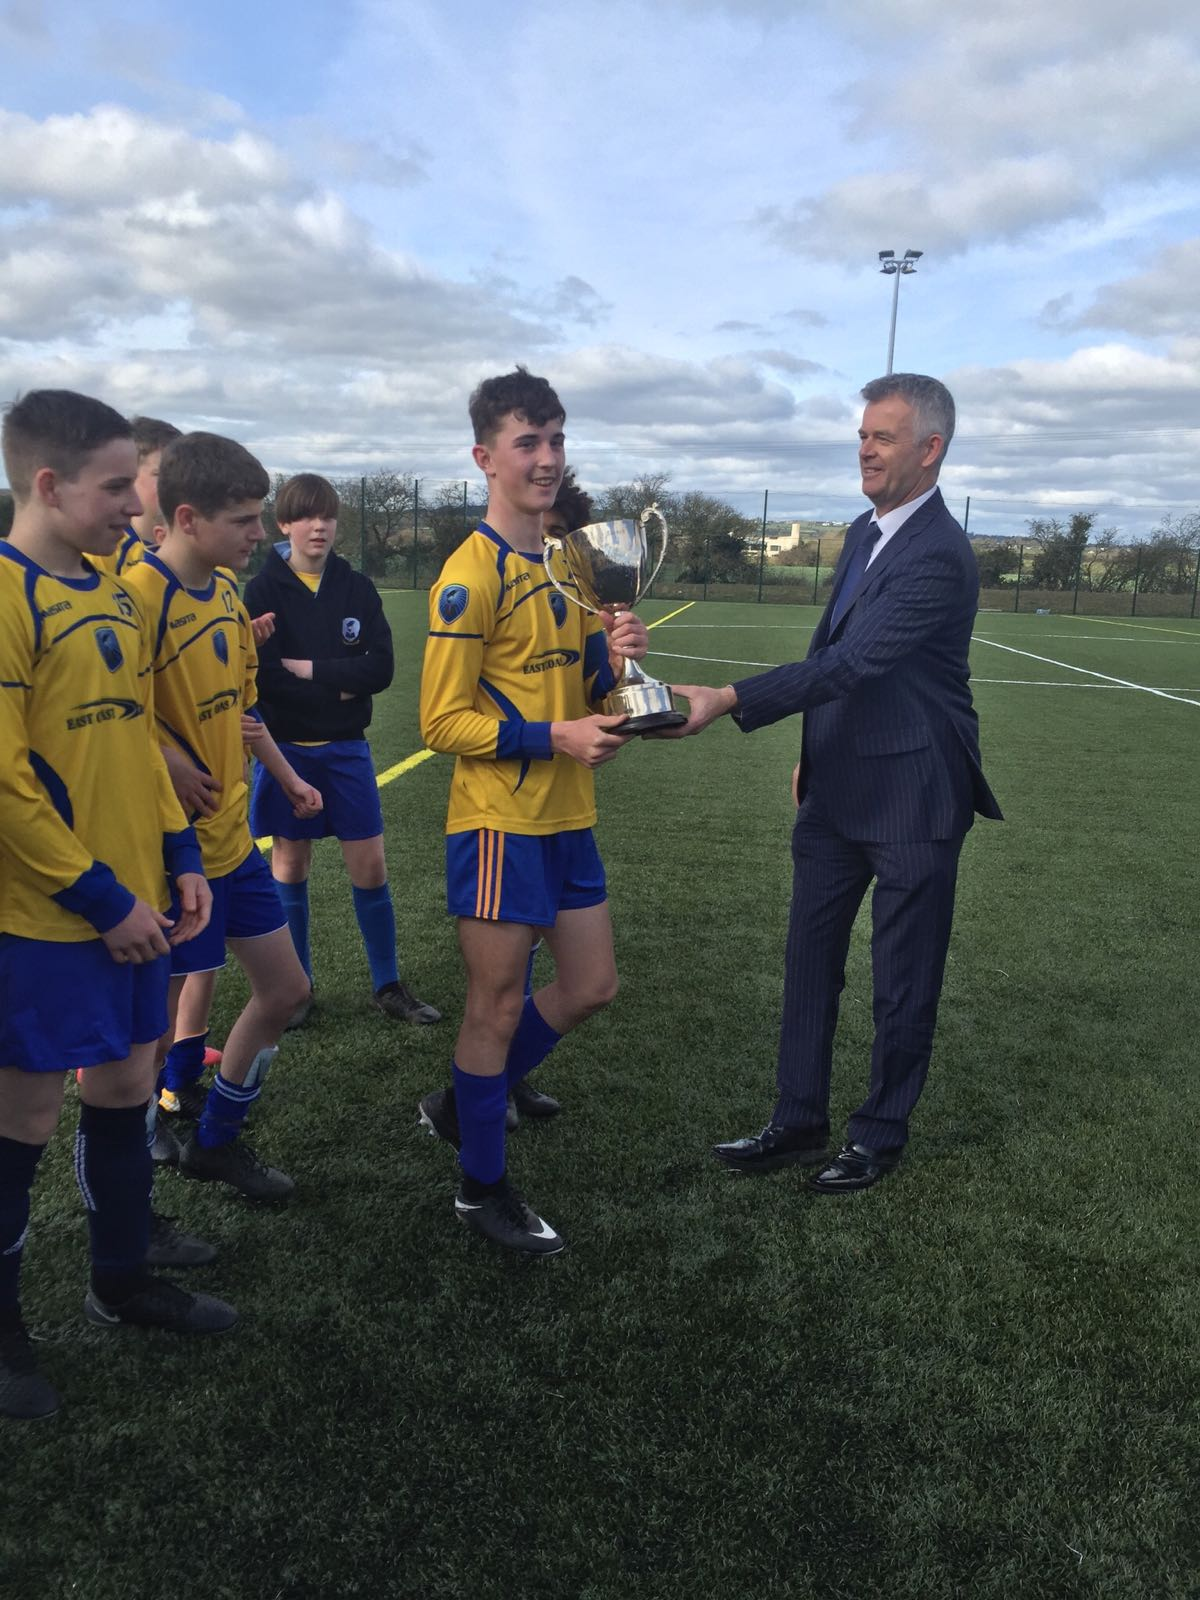 CNI Team Presented with League Trophy